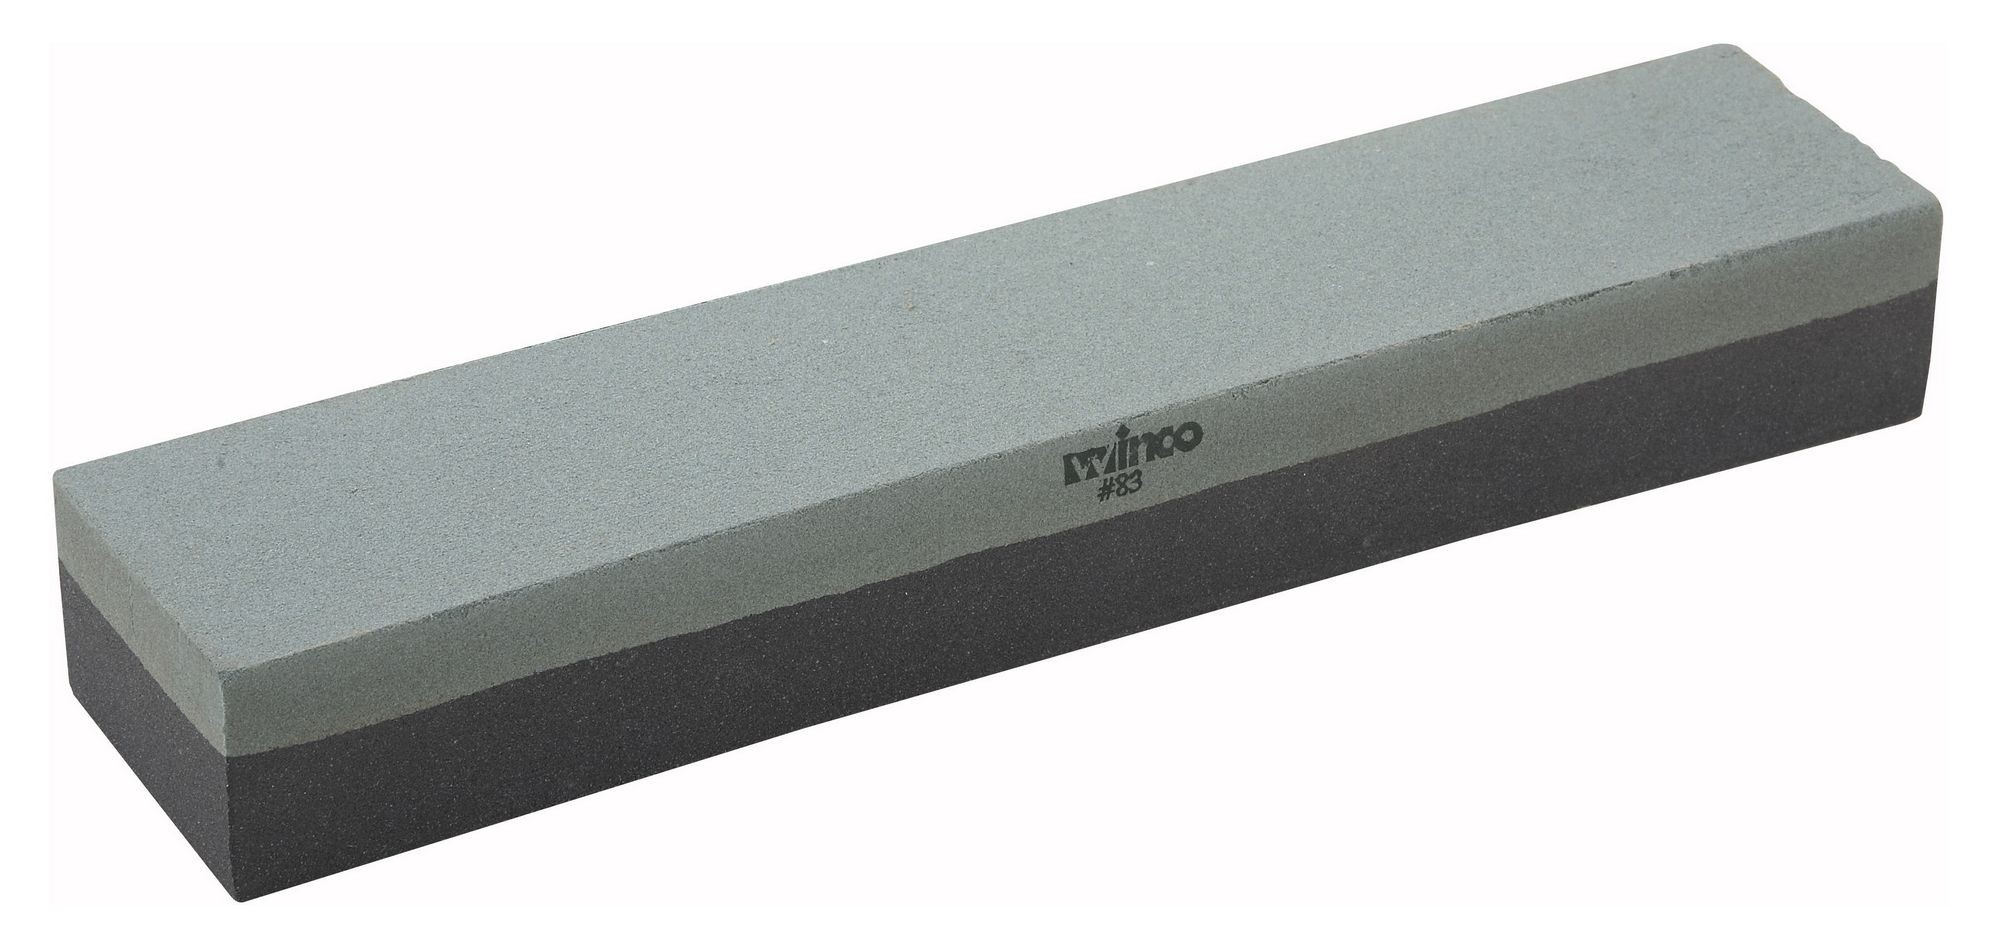 "Winco SS-1211 Combination Sharpening Stone 12"" x 2-1/2 "" x 1-1/2"""